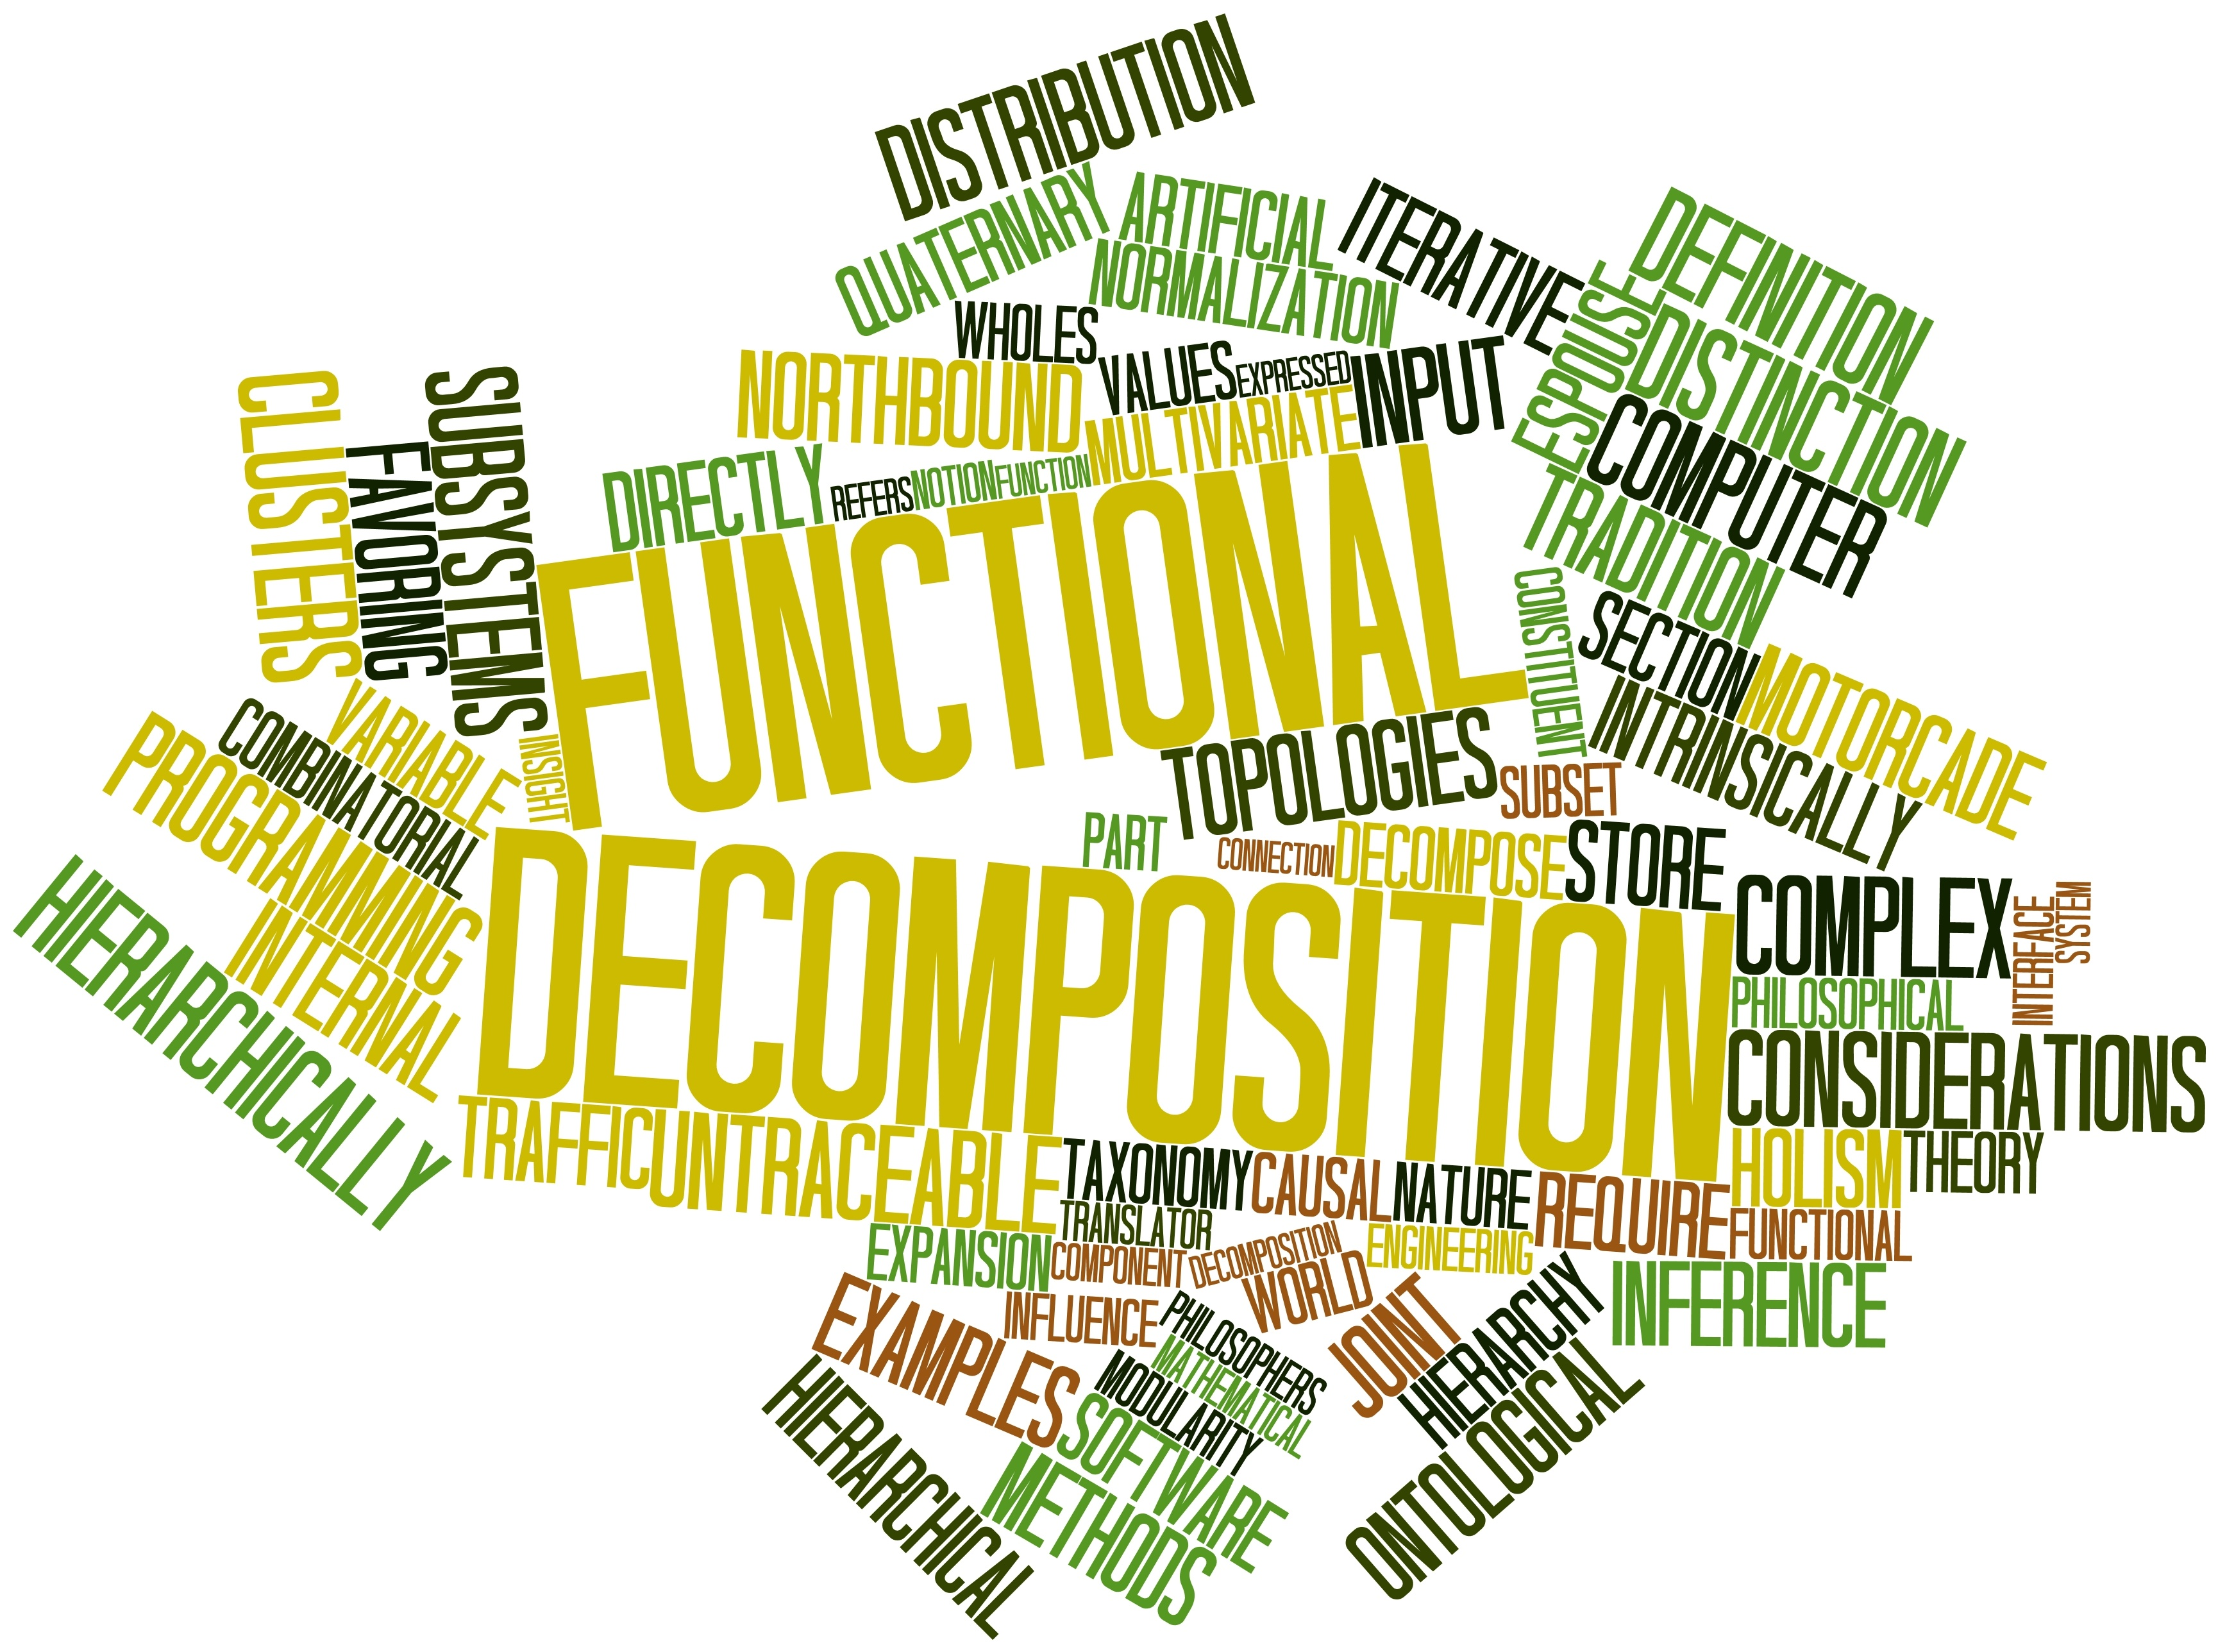 Functional Architecture What Is It And Why Every System Engineer Should Care